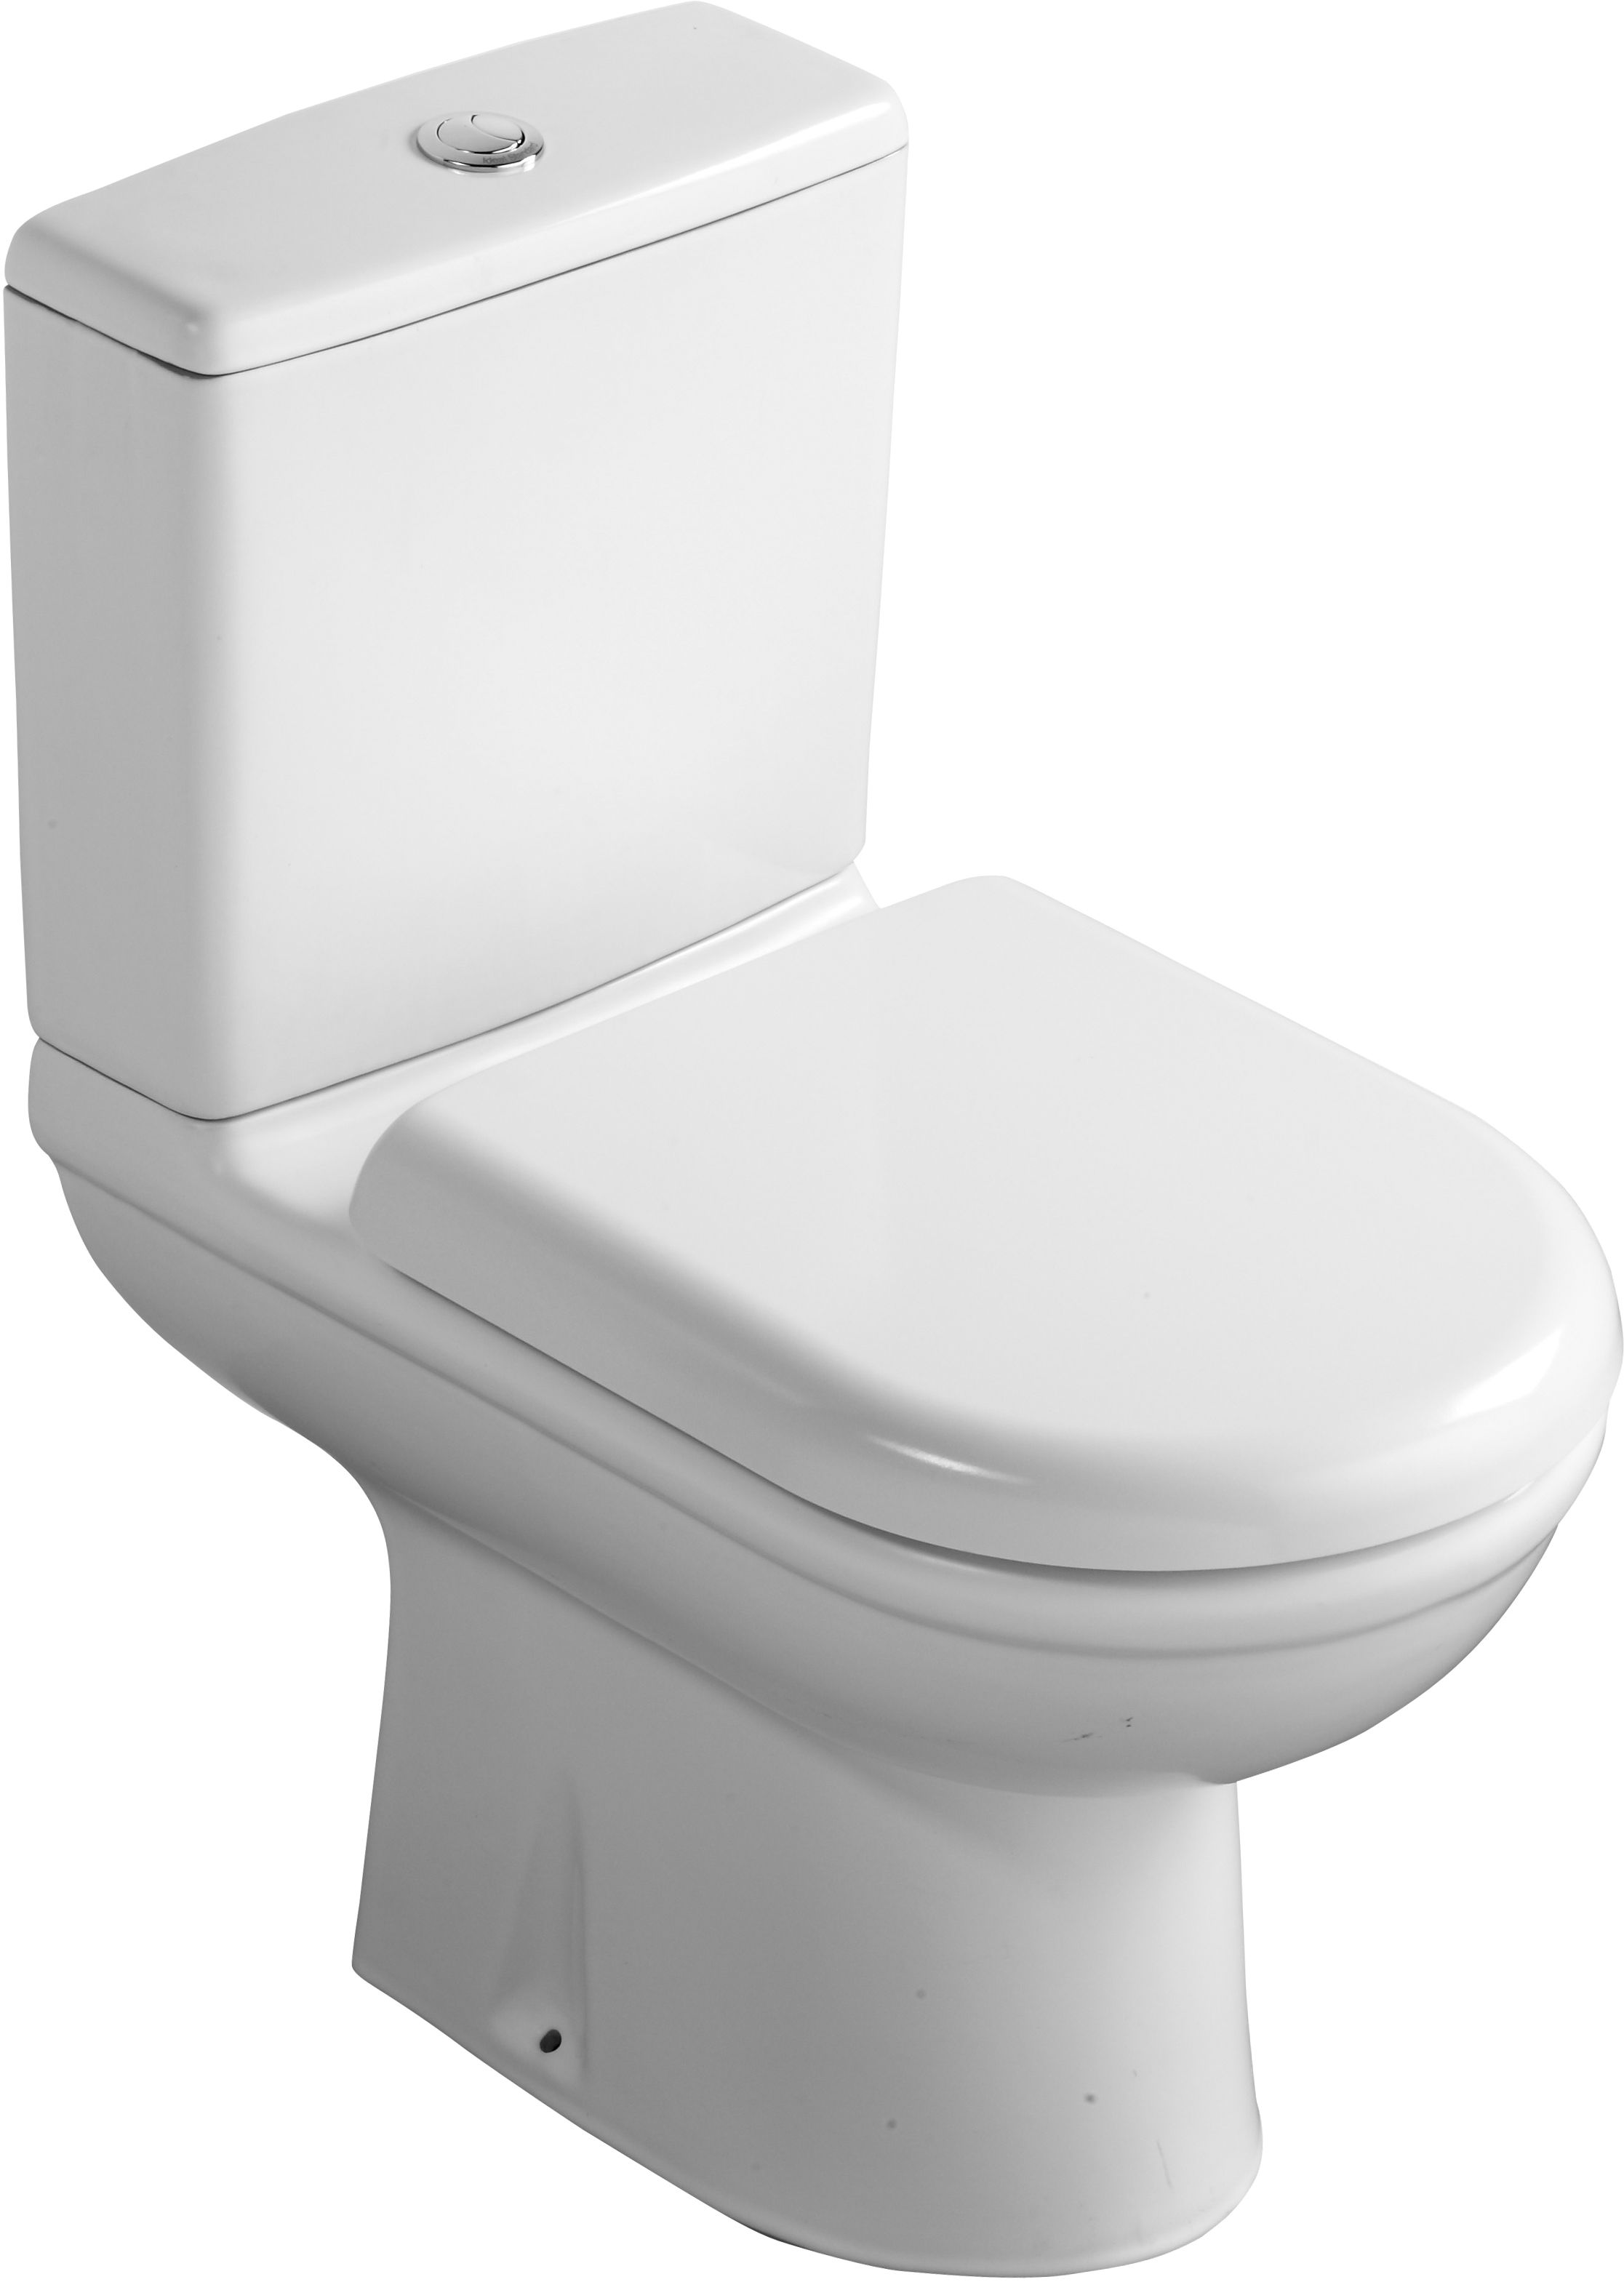 Ideal Standard Della Close Coupled Toilet With Soft Close Seat Departments Diy At B Q